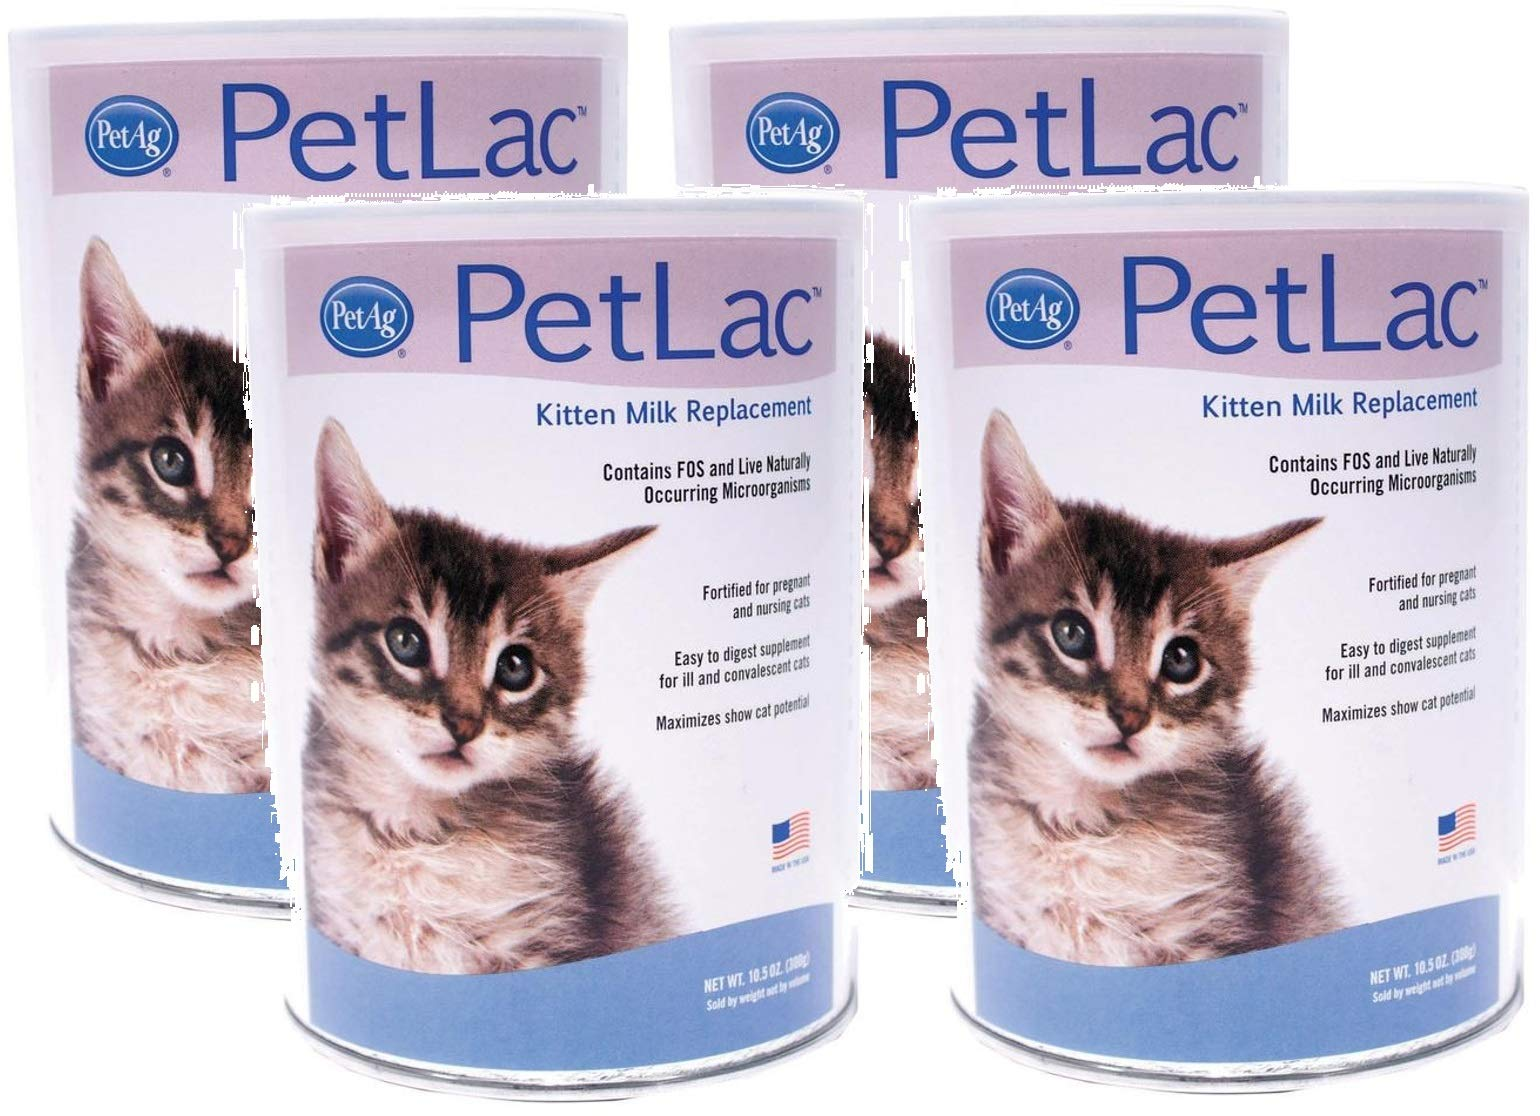 Pet Ag 4 Pack of PetLac Milk Powder for Kittens, 10.5-Ounce Each